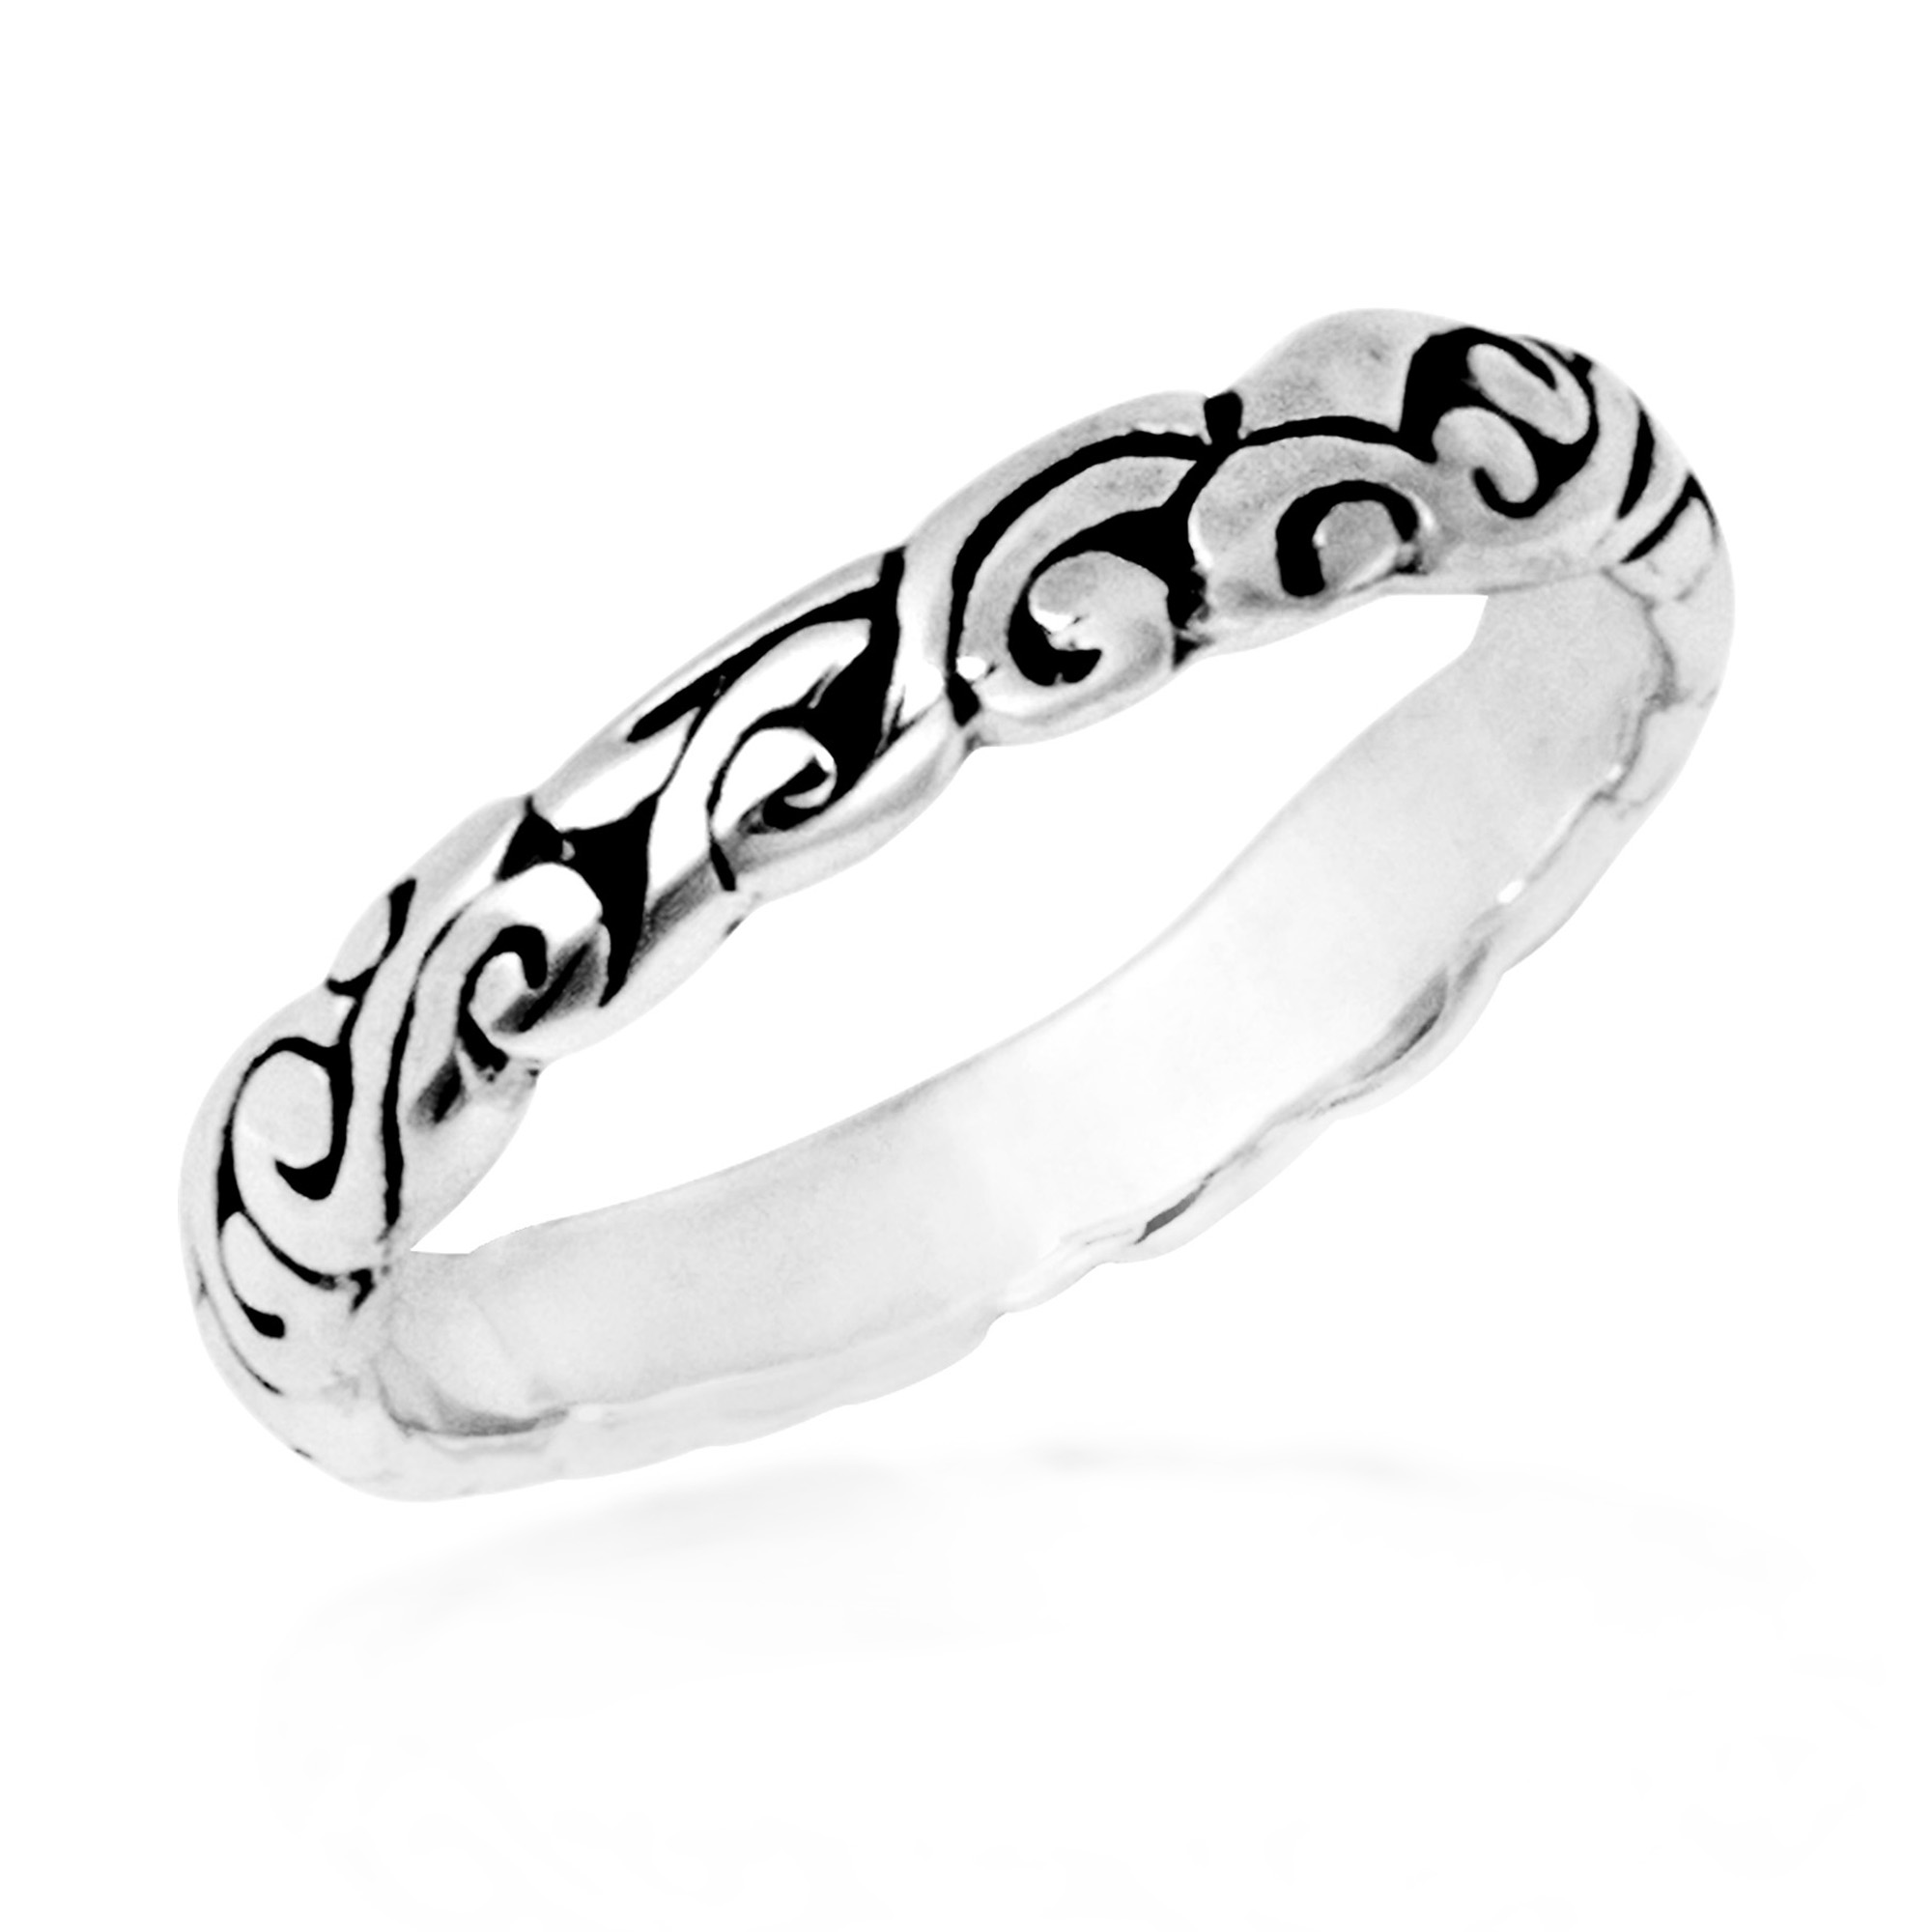 ranger silver shop bands jewellery ring band filigree sterling christin